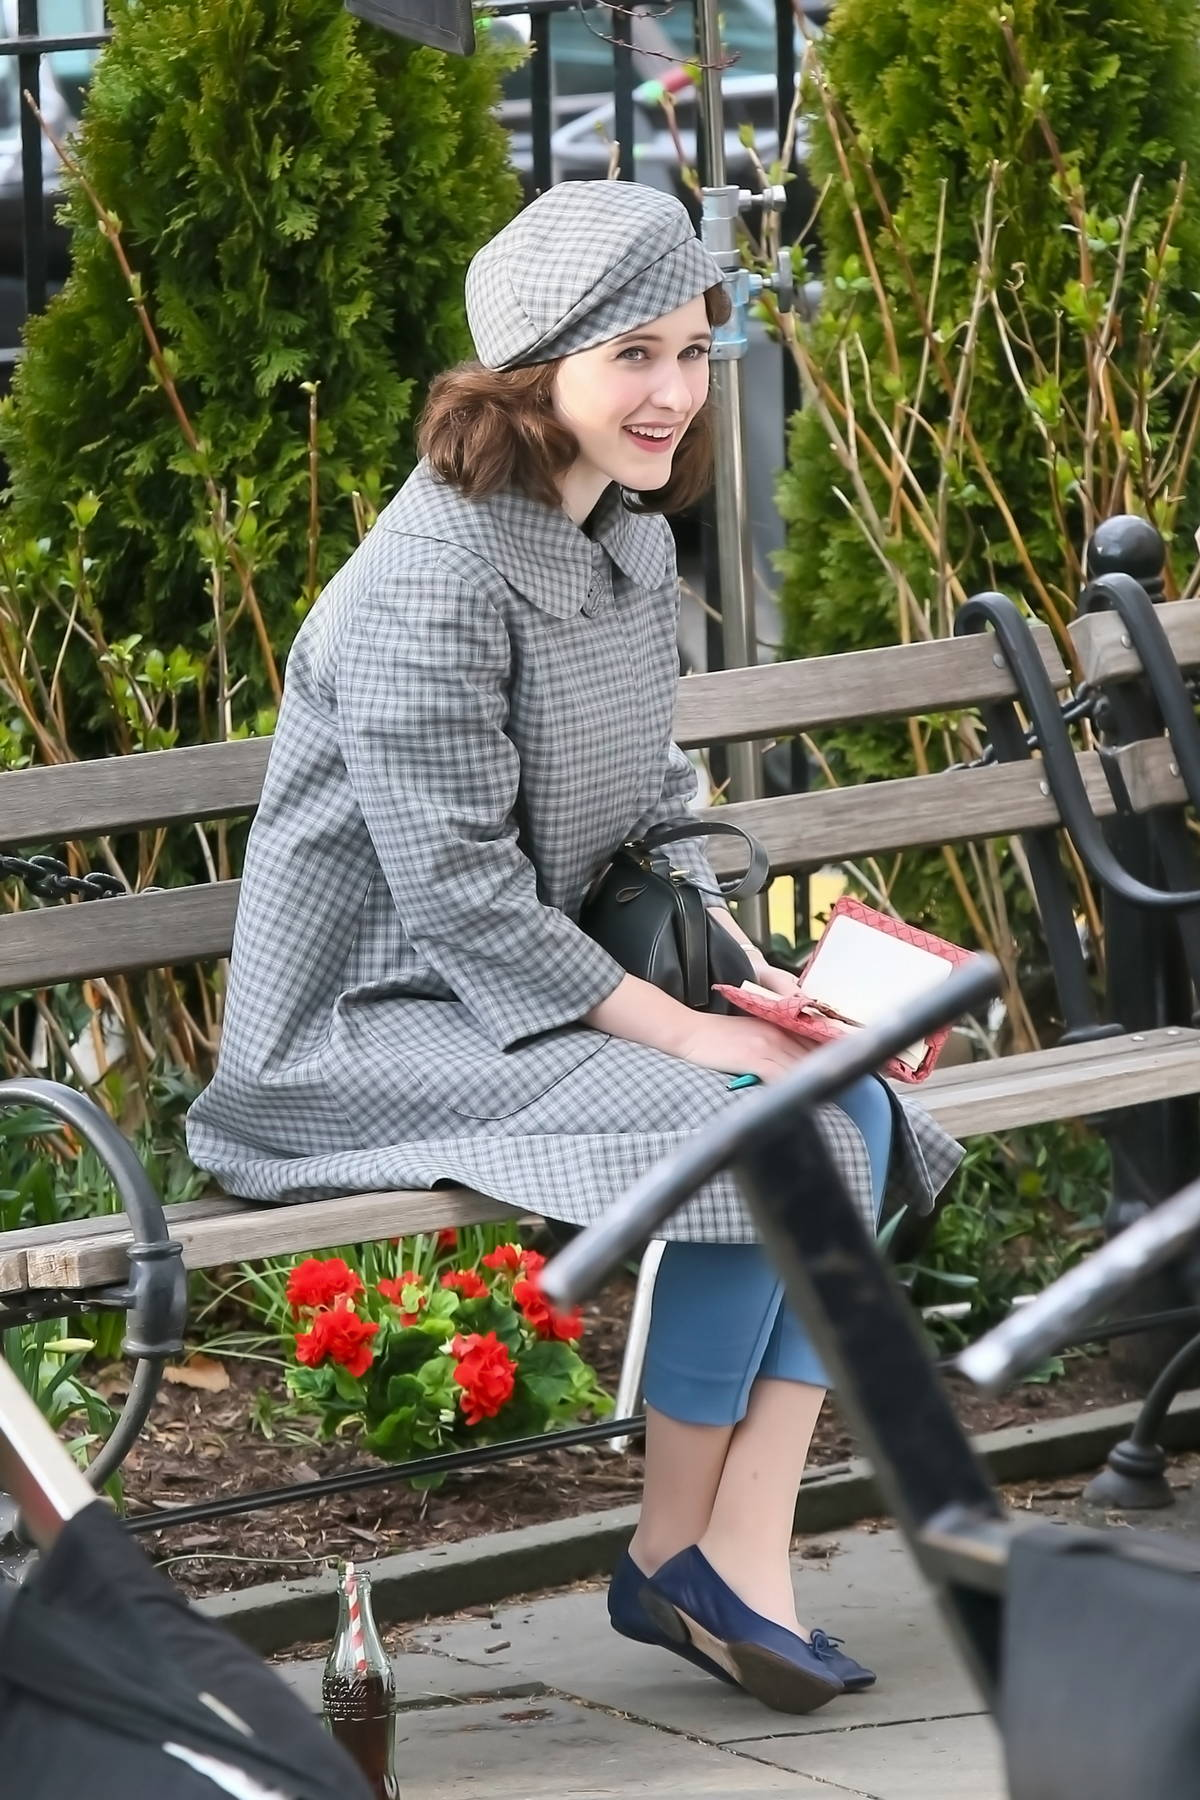 Rachel Brosnahan seen on set filming 'The Marvelous Mrs. Maisel' in New York City